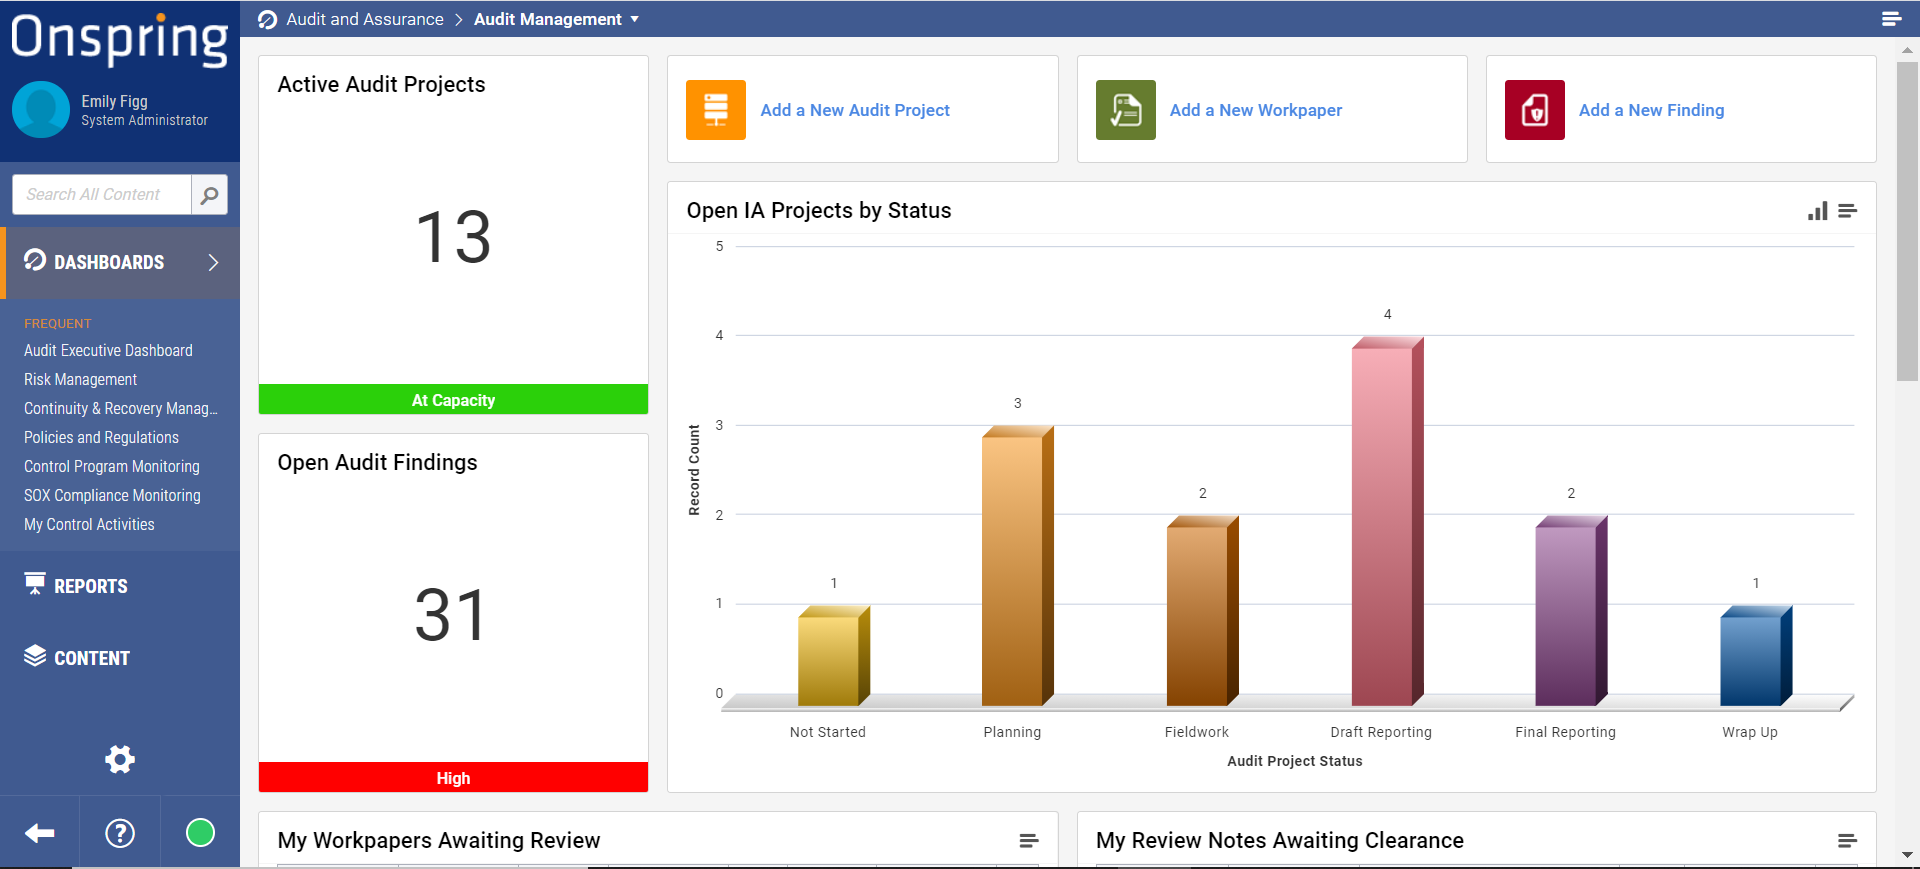 Audit Management Dashboard in Onspring Automation Software